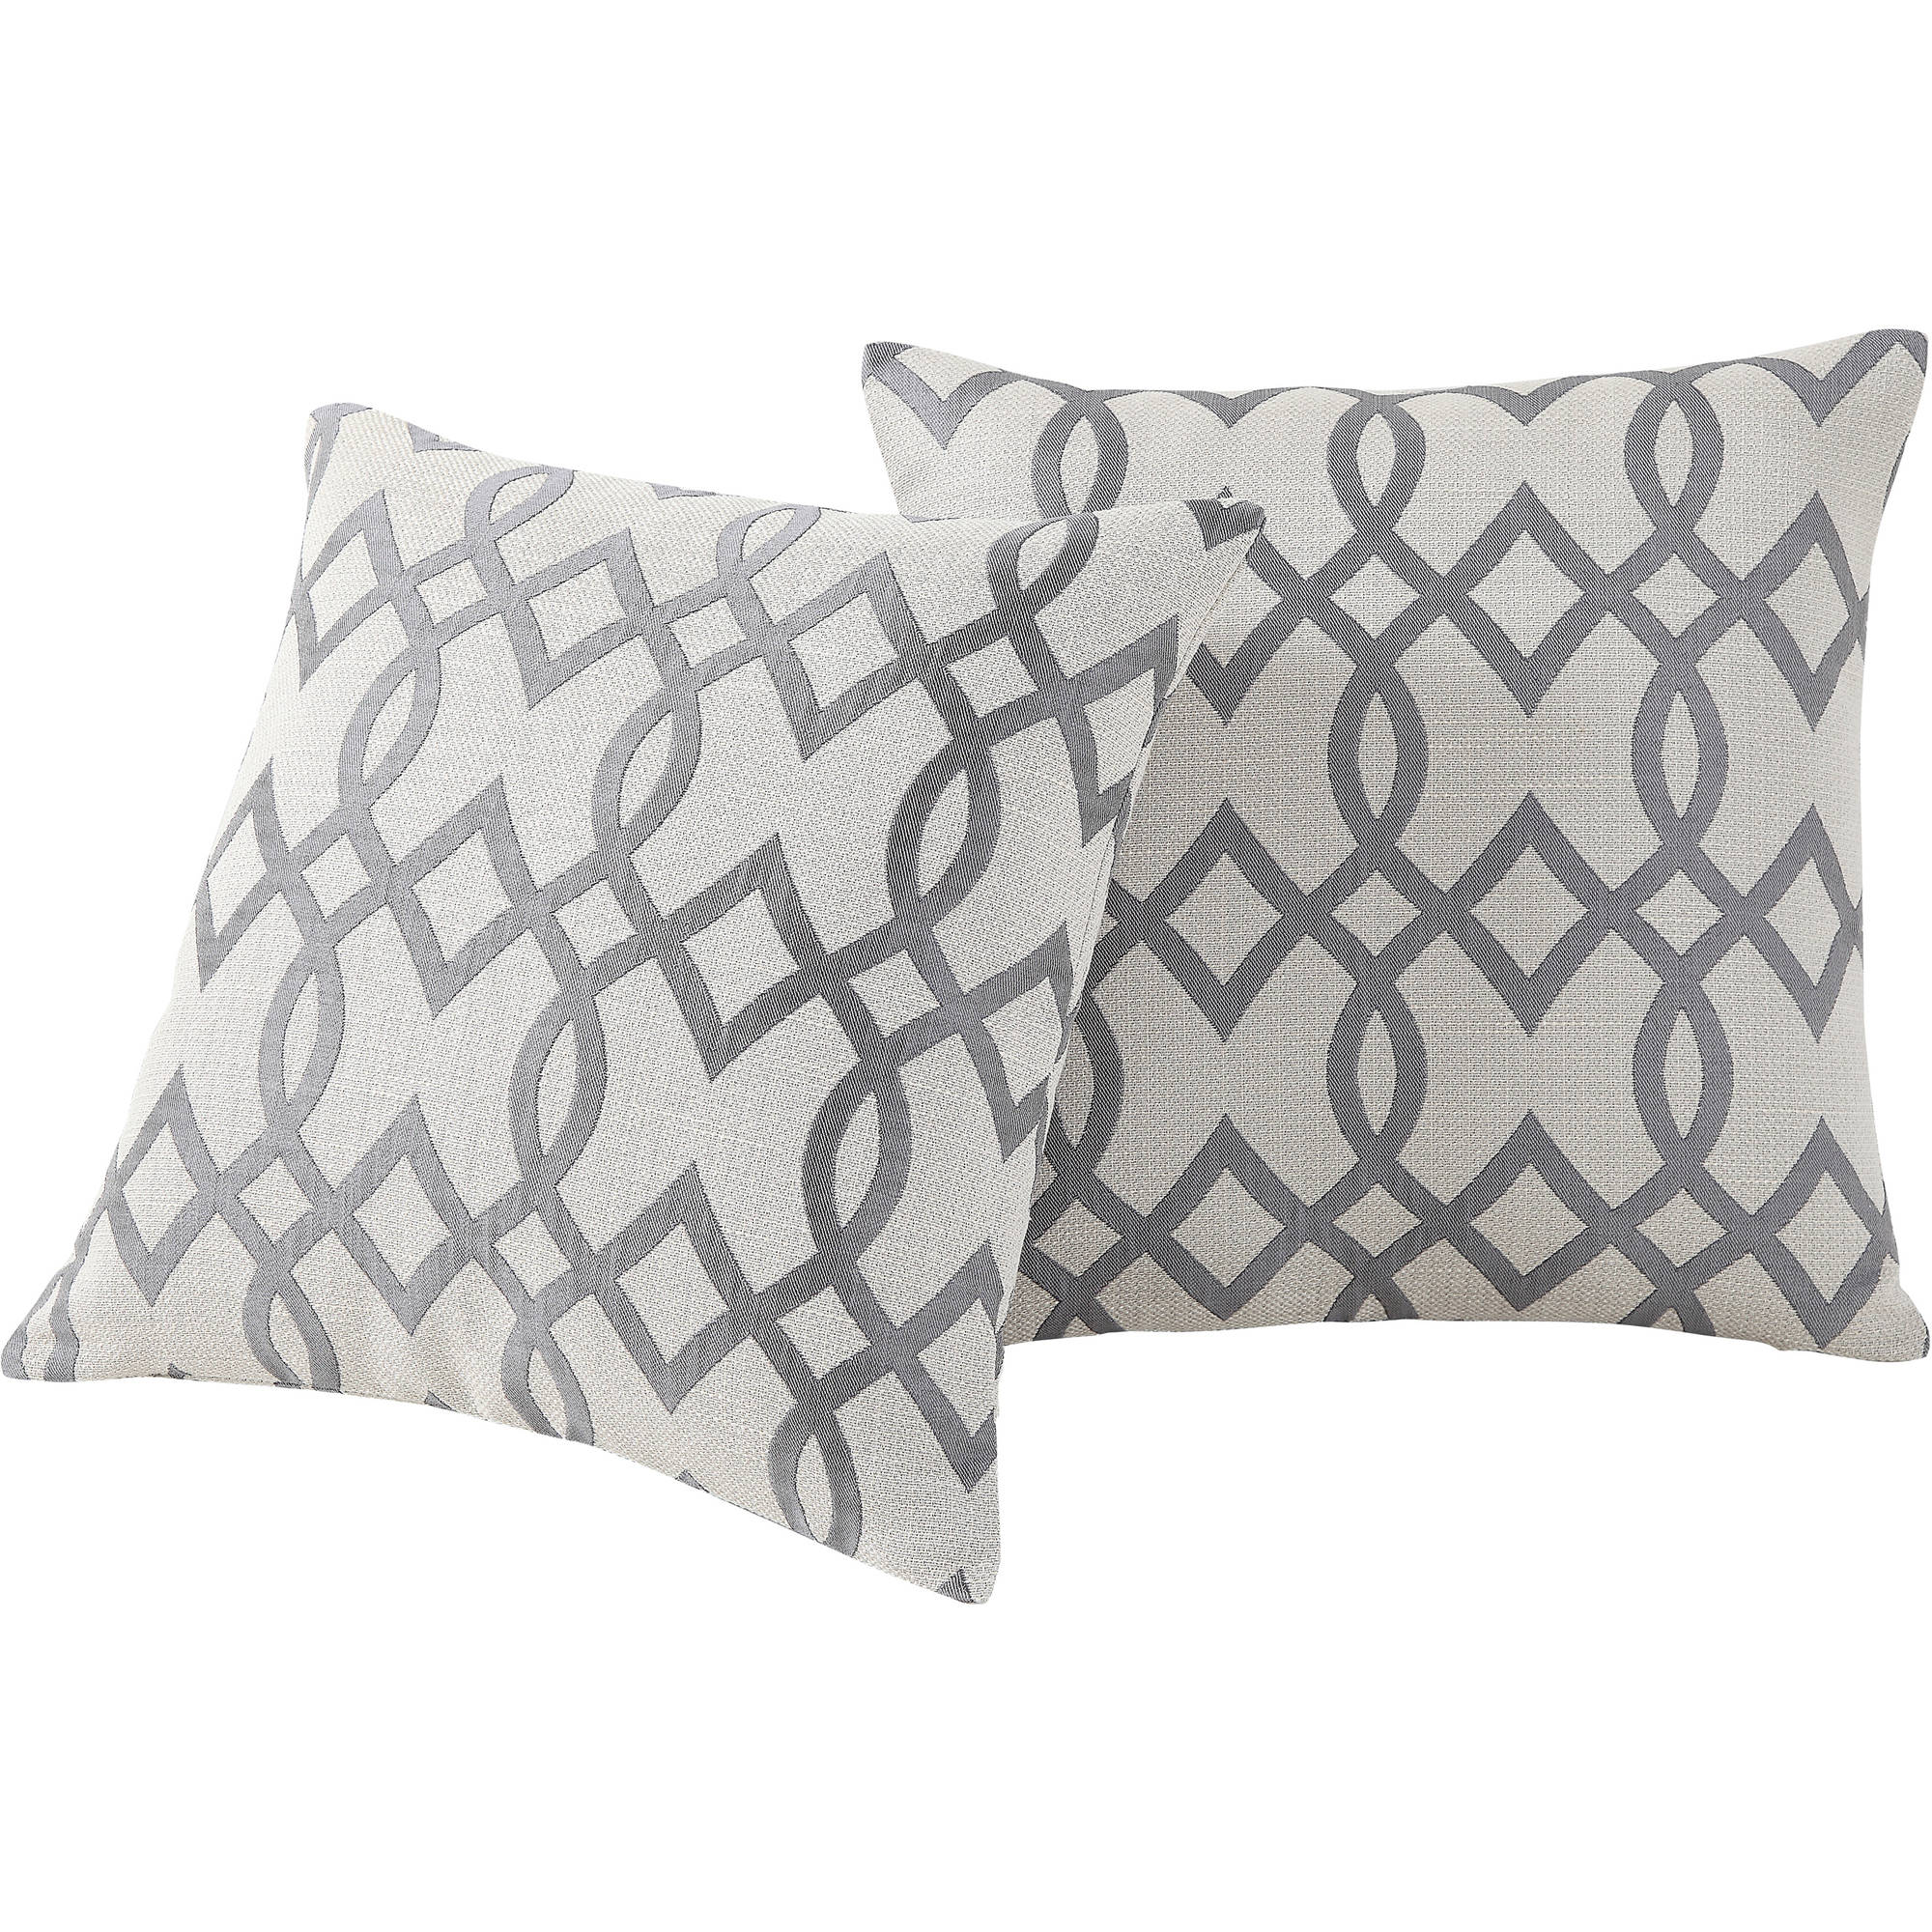 mainstays trellis pillow set of 2 - White Decorative Pillows